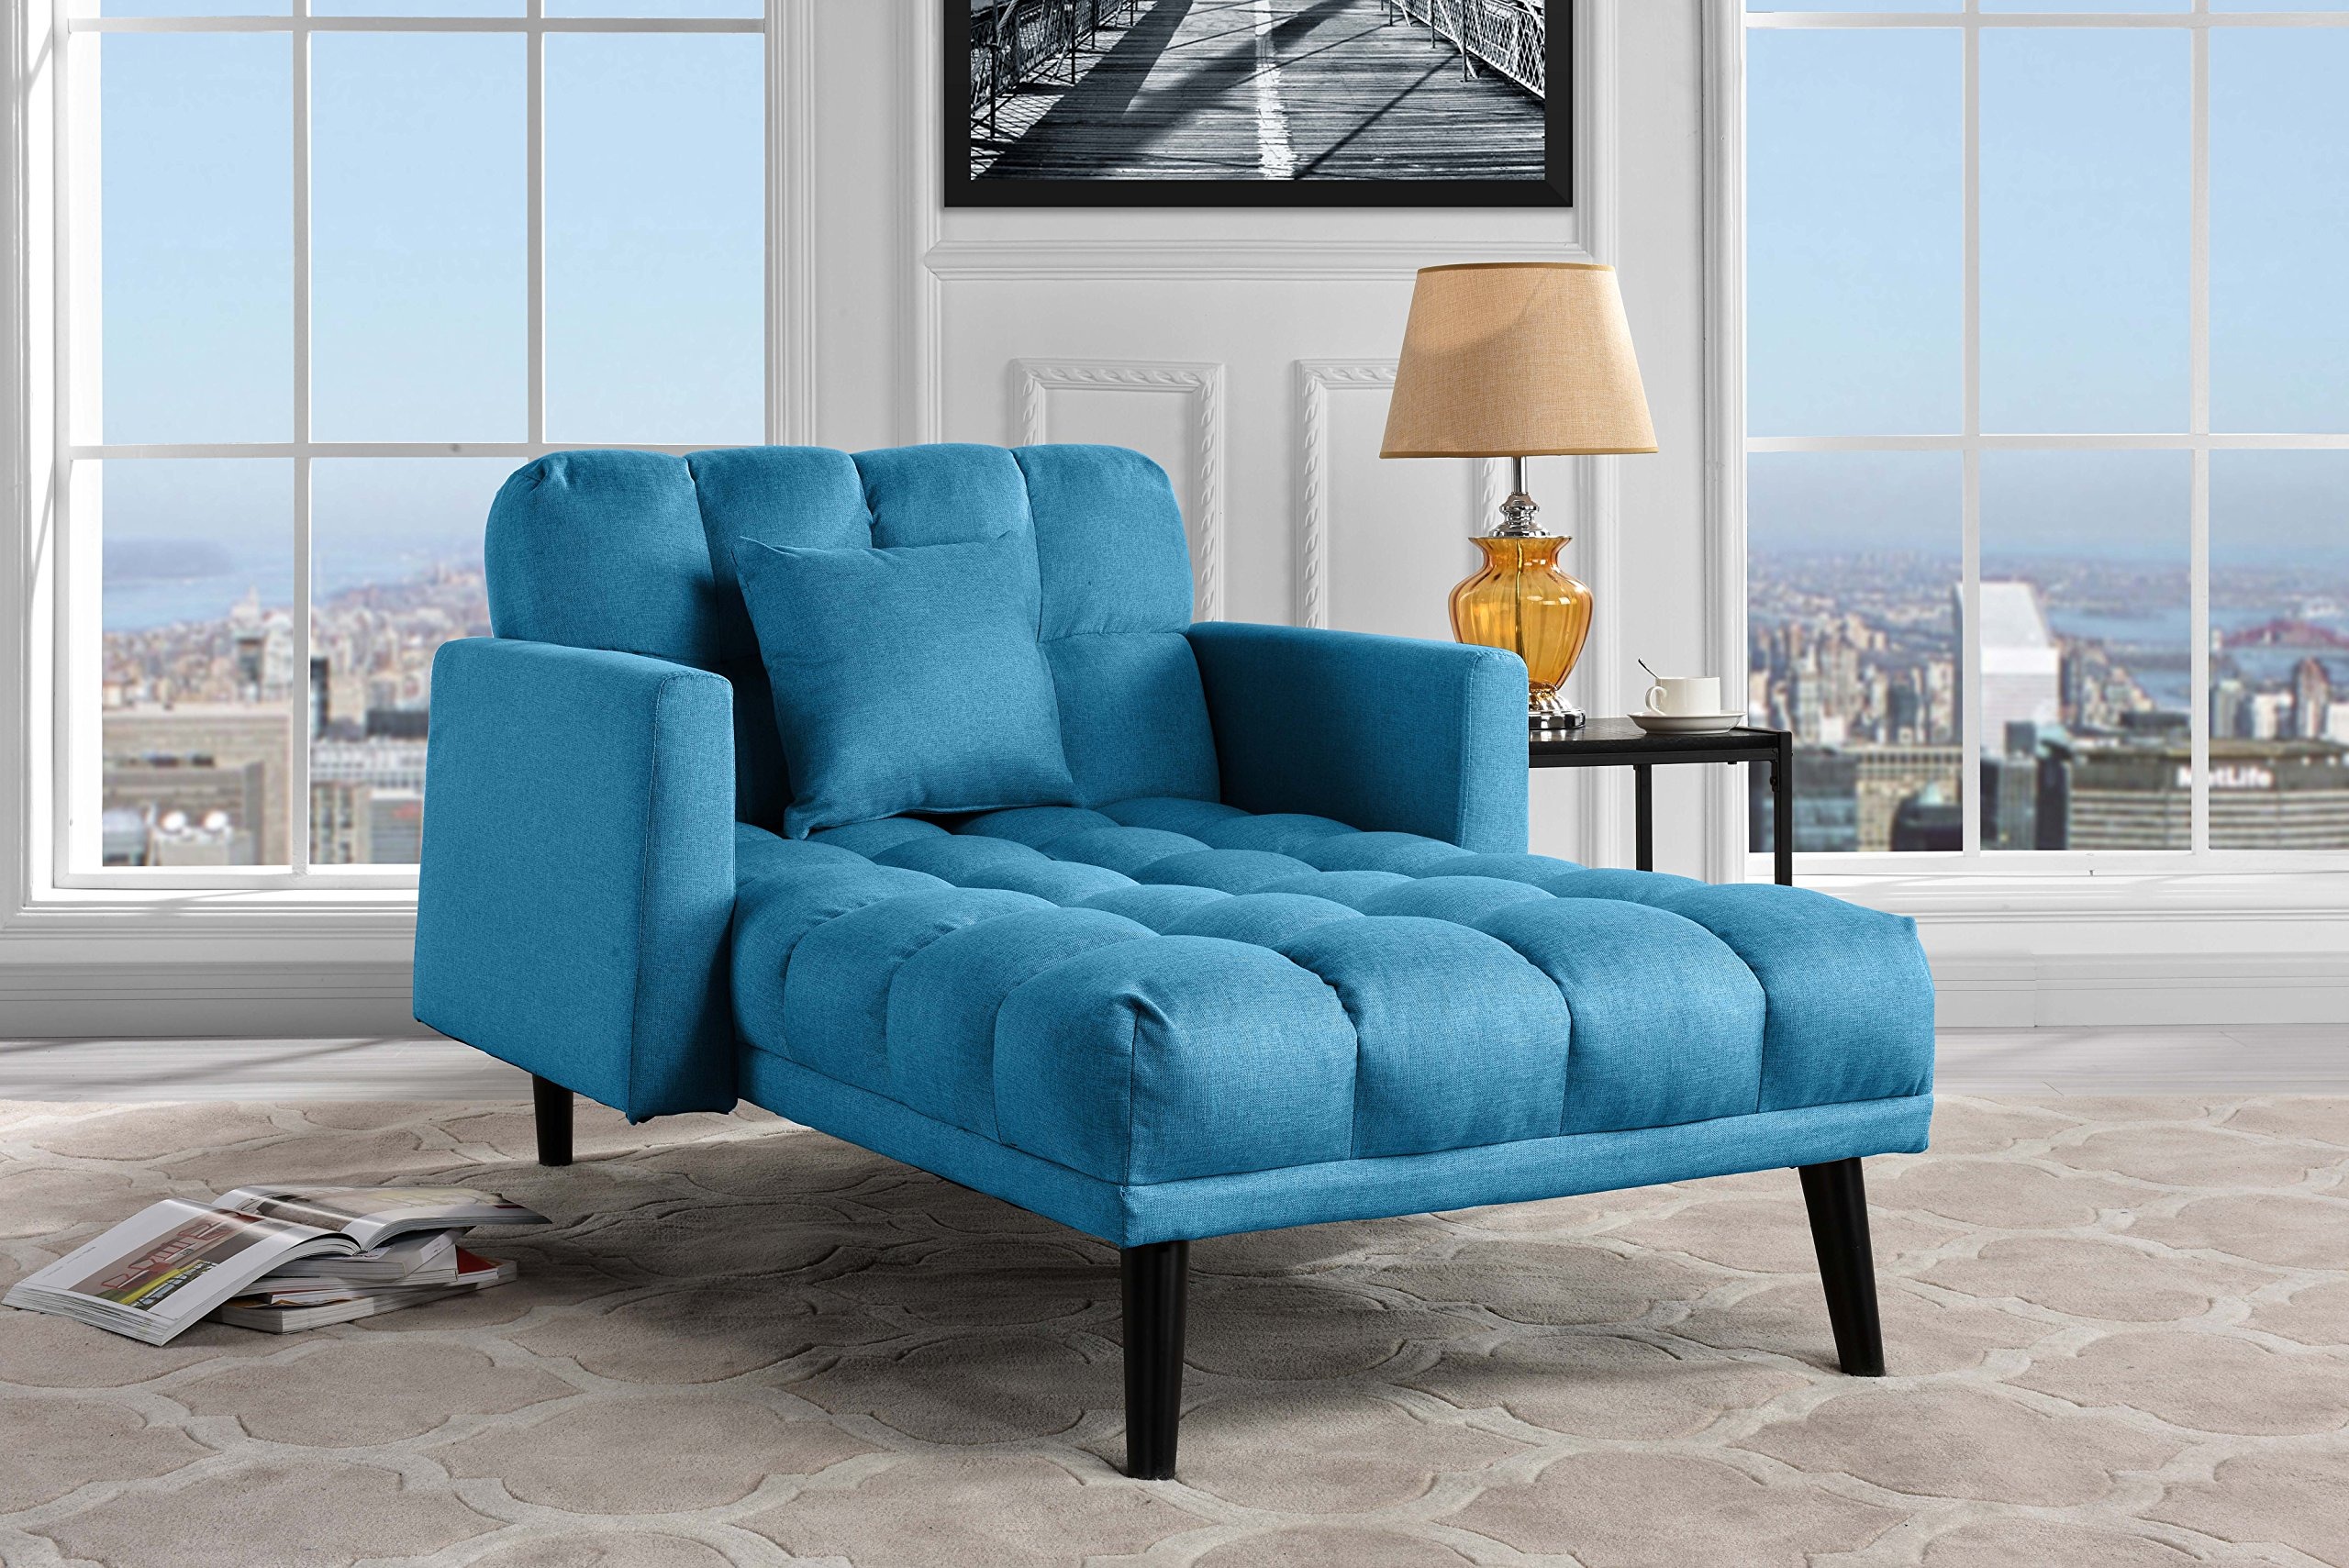 Sofamania Modern Linen Fabric Recliner Sleeper Chaise Lounge - Futon Sleeper Single Seater with Nailhead Trim (Sky Blue) by Sofamania